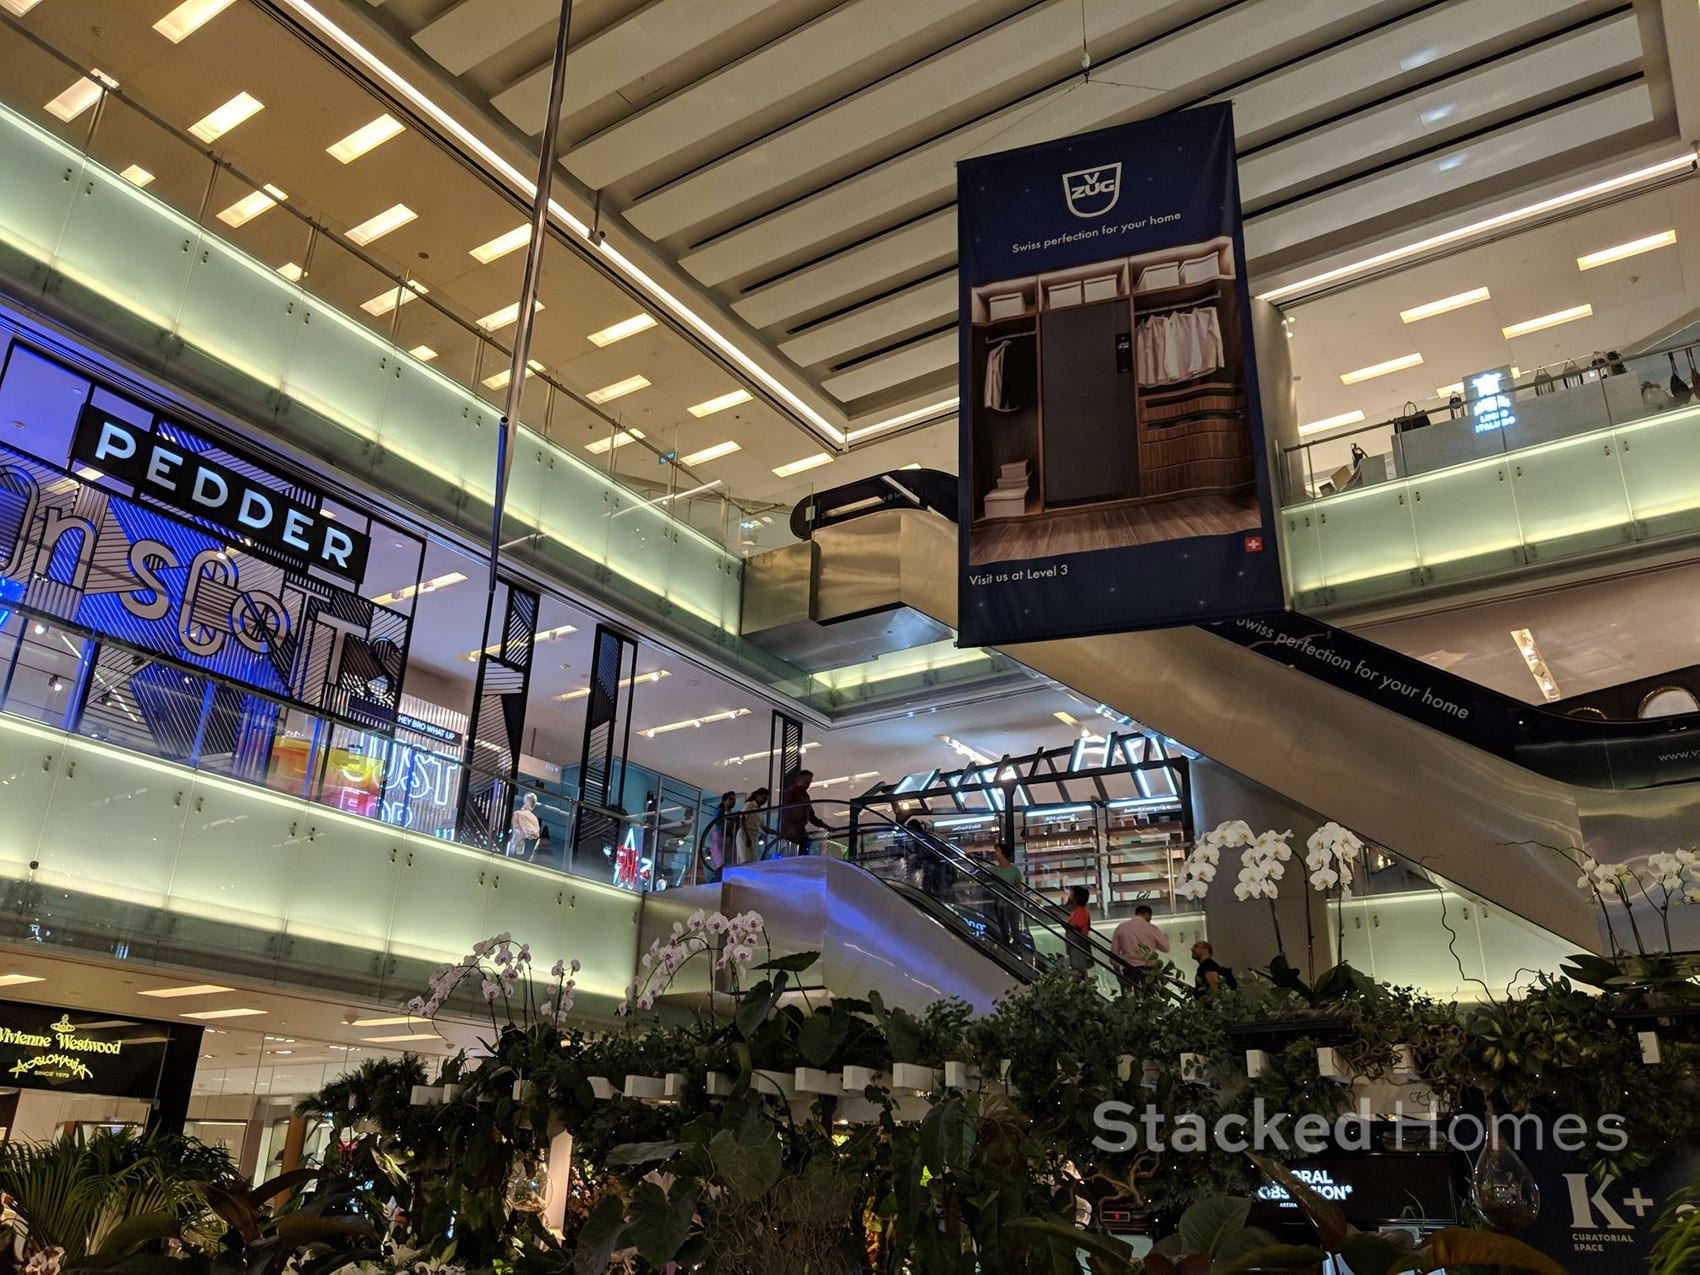 scotts square shopping mall